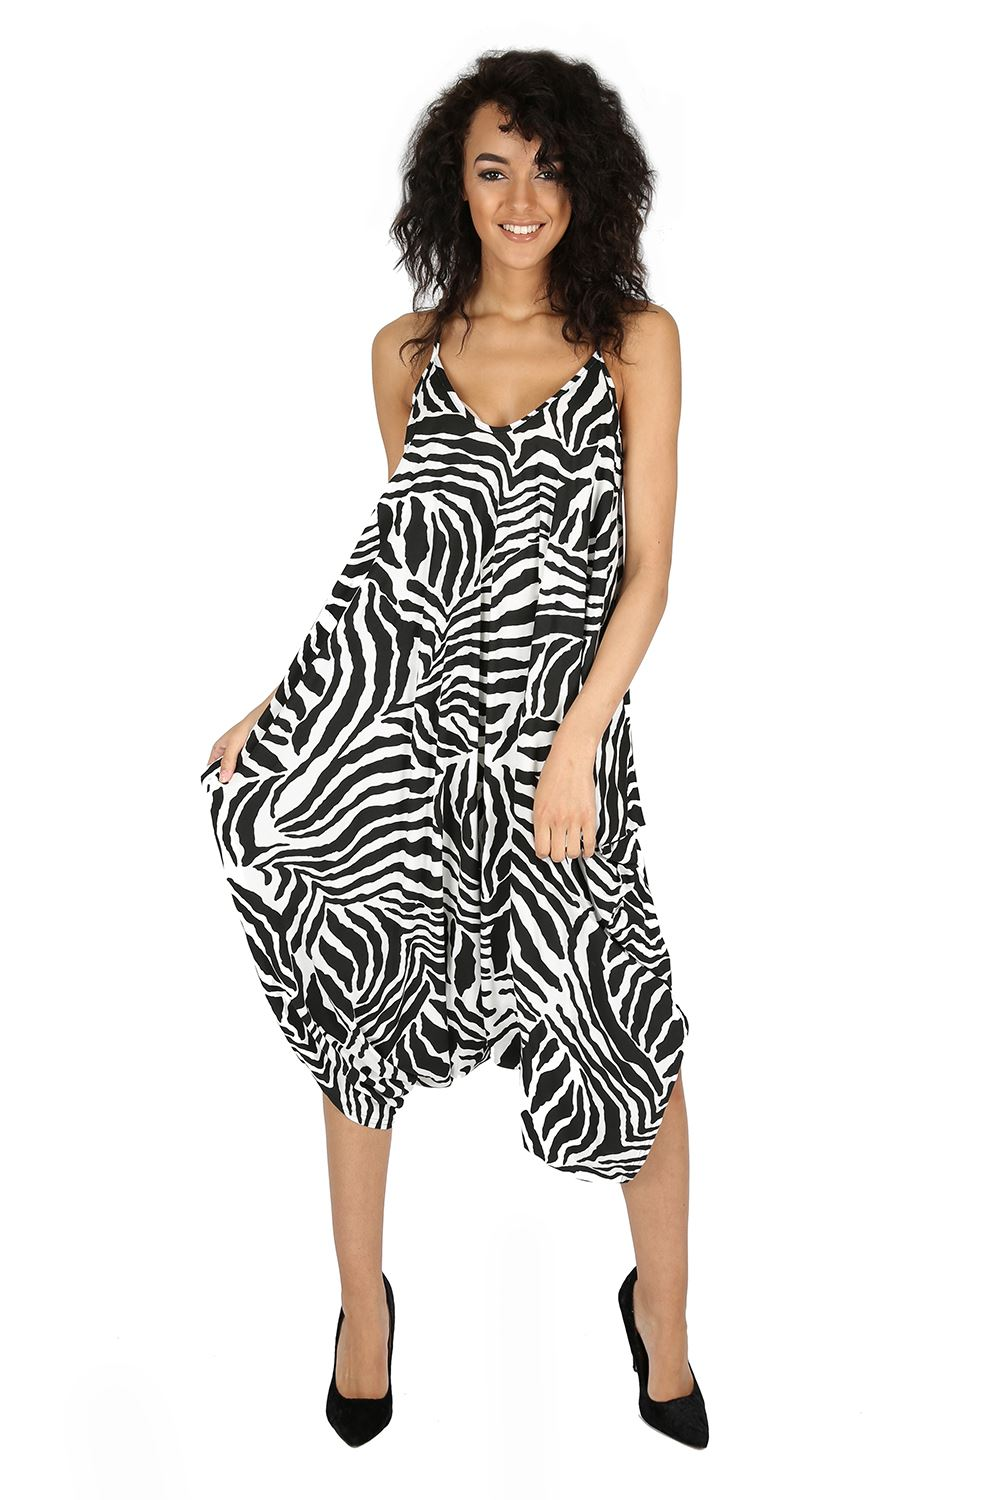 Shop women's jumpsuits & rompers at anthonyevans.tk Discover a stylish selection of the latest brand name and designer fashions all at a great value.